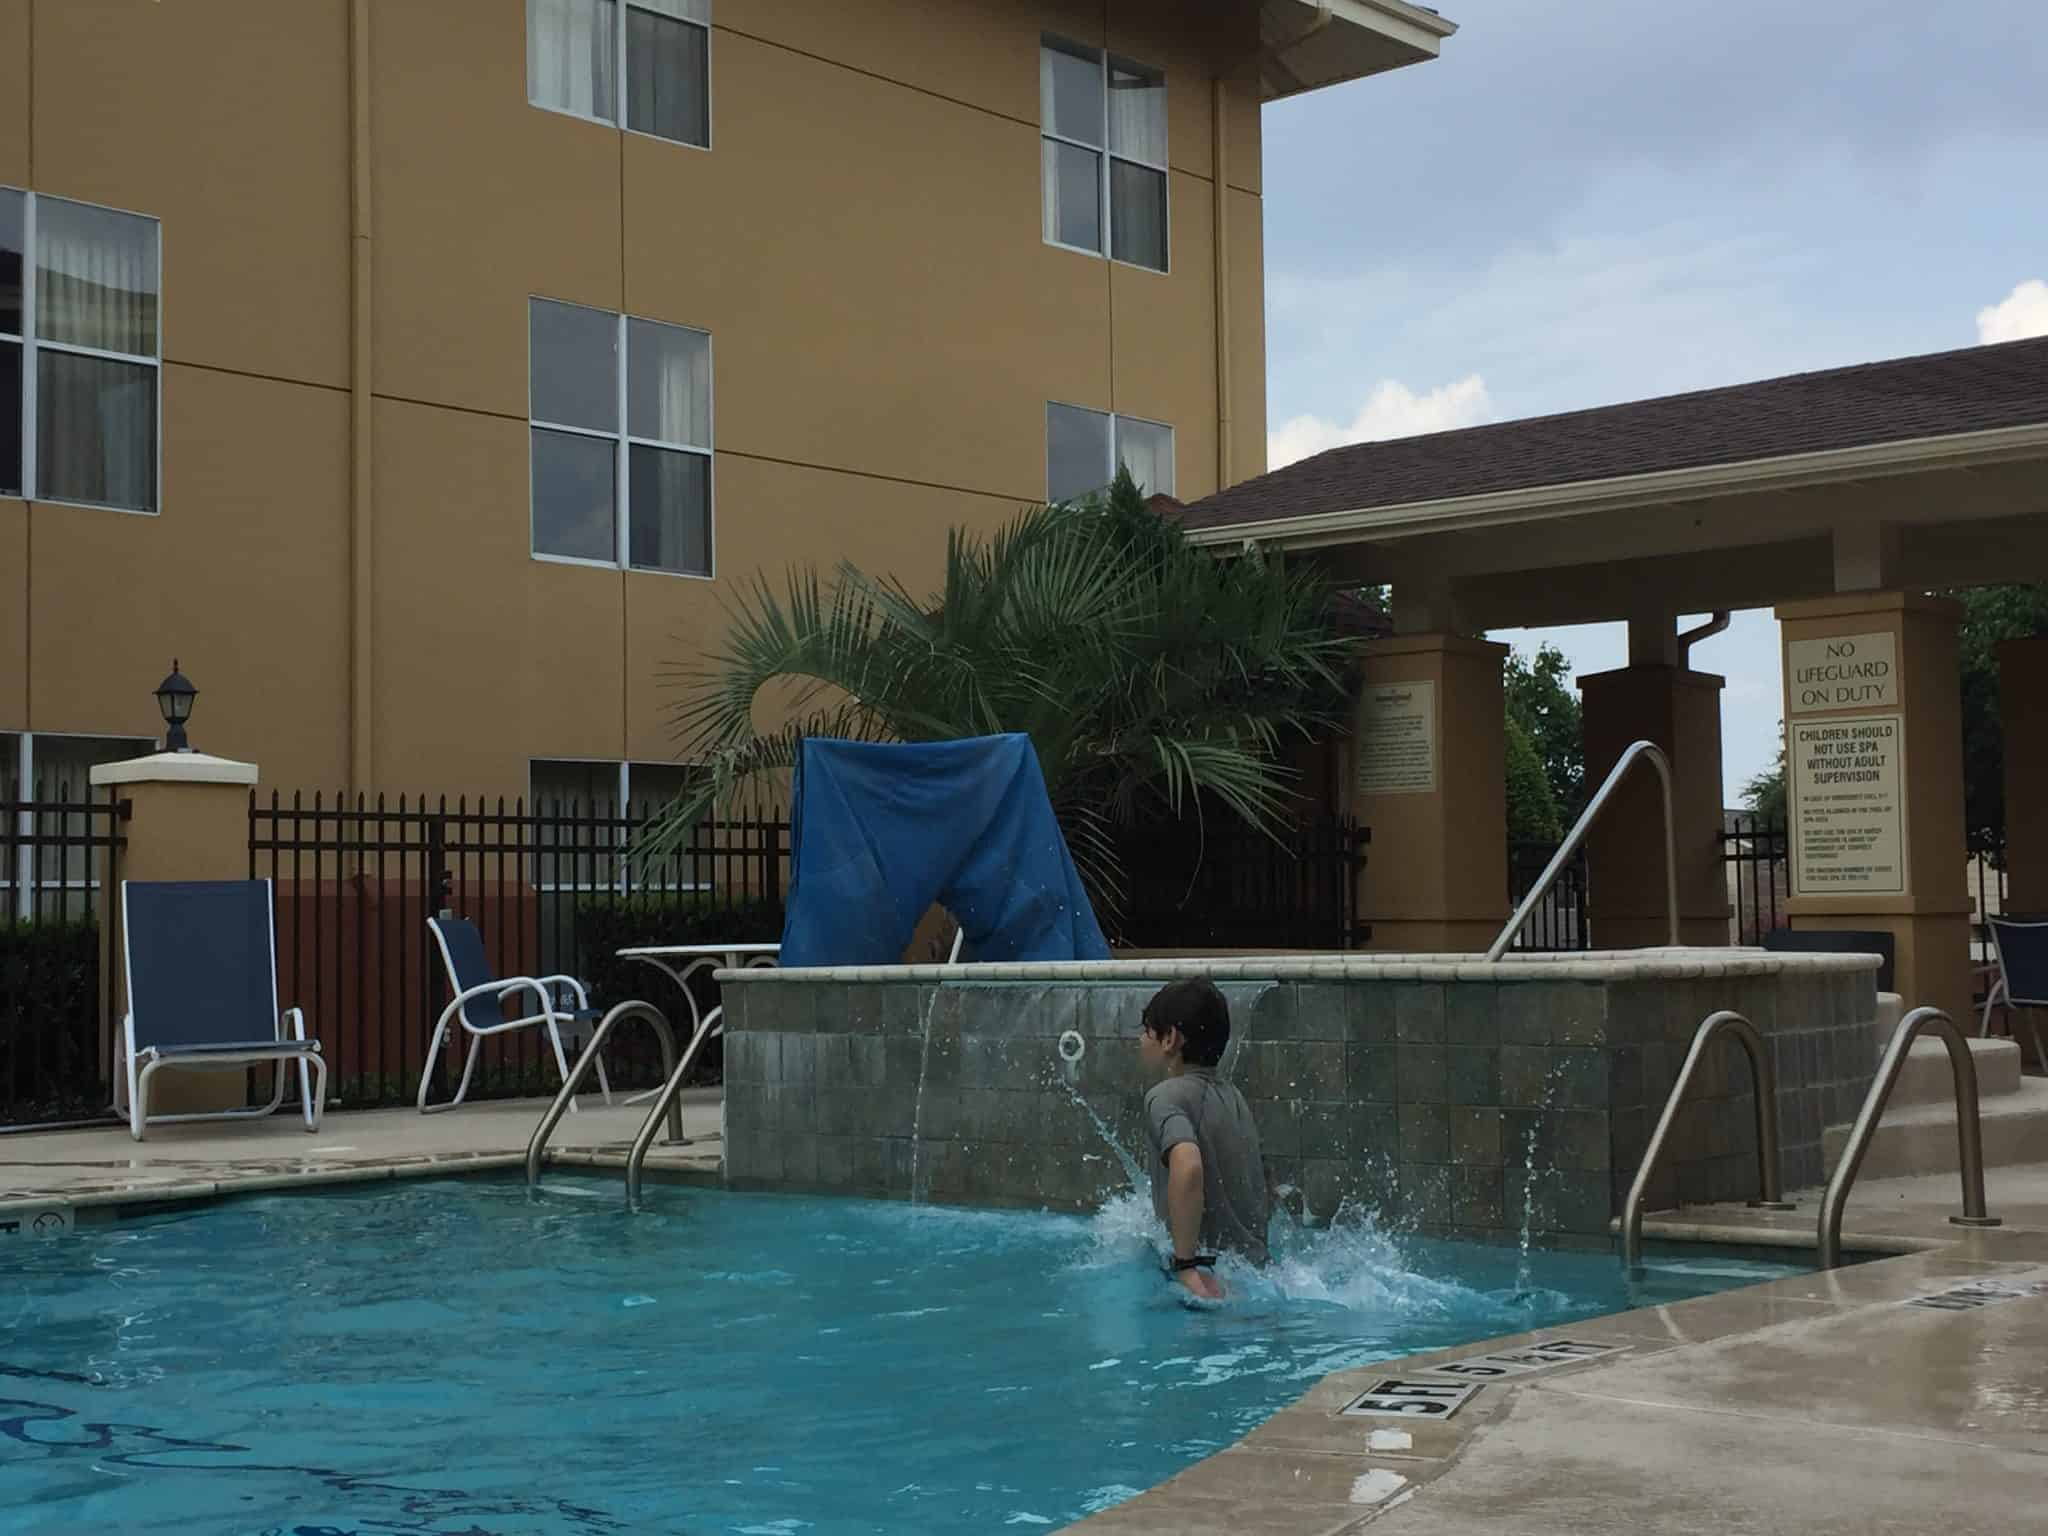 extended-stay-america-for-family-friendly-and-pet-friendly-travel-kids-in-the-pool-4190701